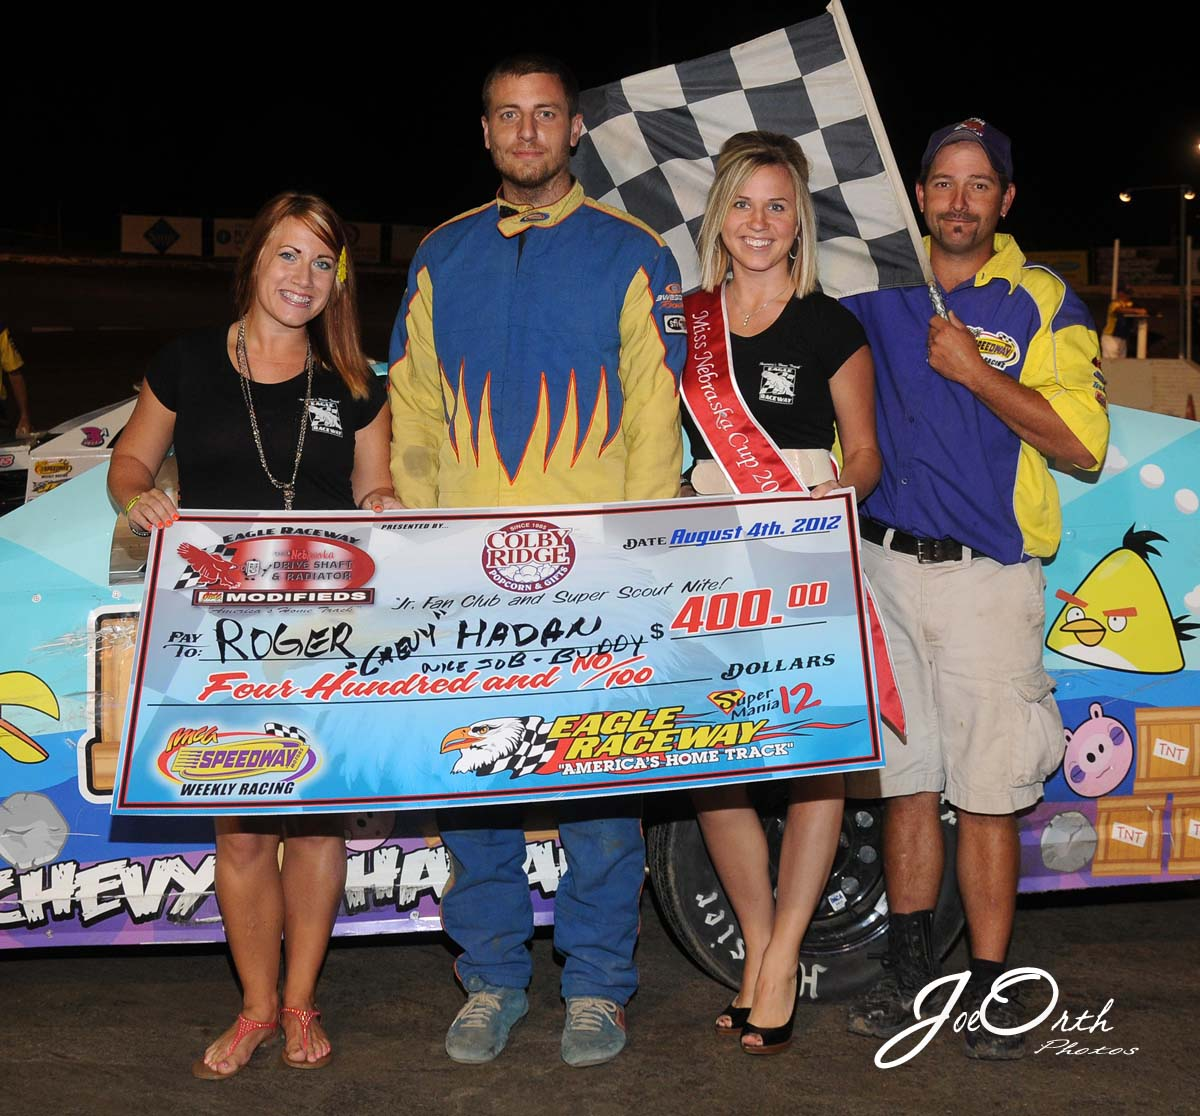 eagle-08-04-12-597-chevy-hadan-with-miss-nebraska-cup-deanne-kathol-and-finalist-elle-patocka-and-flagman-billy-lloyd